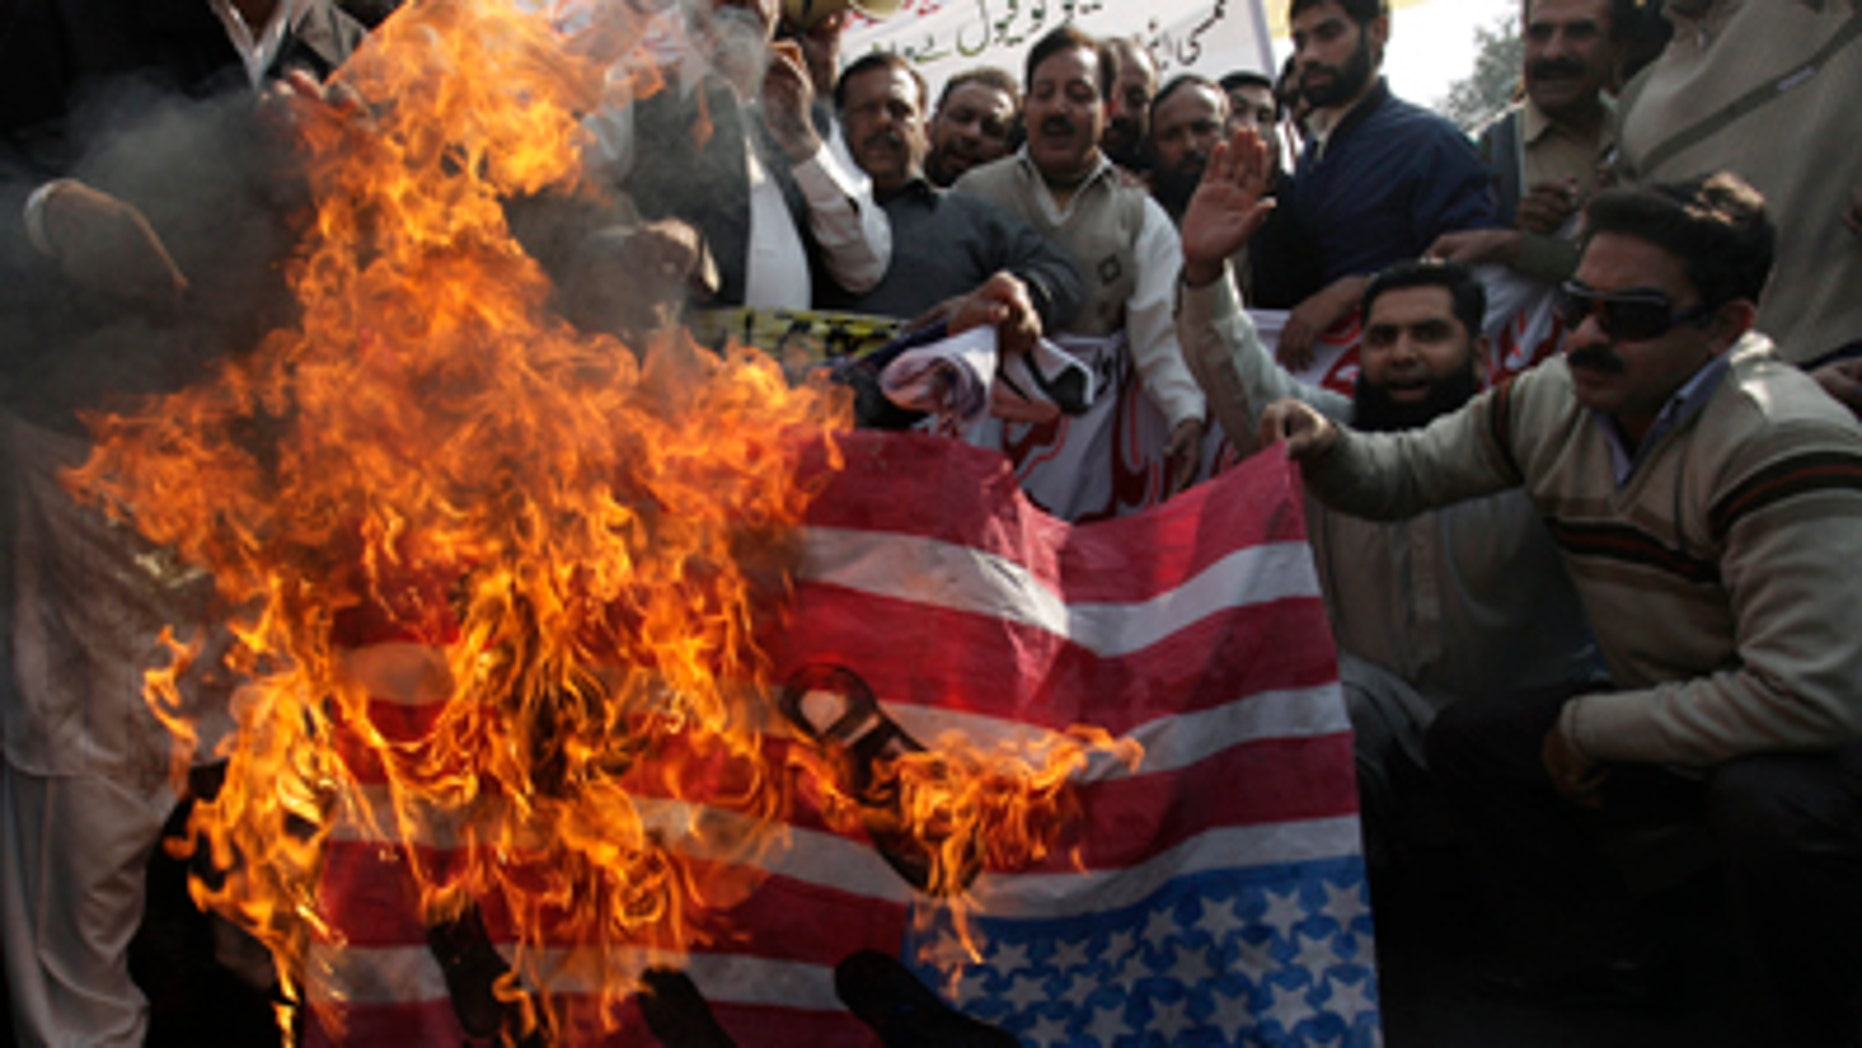 Dec. 3, 2011: Pakistani workers burn a replica U.S. flag during a rally to condemn alleged NATO airstrikes on Pakistani troops. U.S. officials gave Pakistan soldiers the wrong location when asking for clearance to attack militants along the border last weekend, Pakistani military officials said Friday. The strike resulted in the deaths of 24 soldiers and a major crisis in relations between Washington and Islamabad.